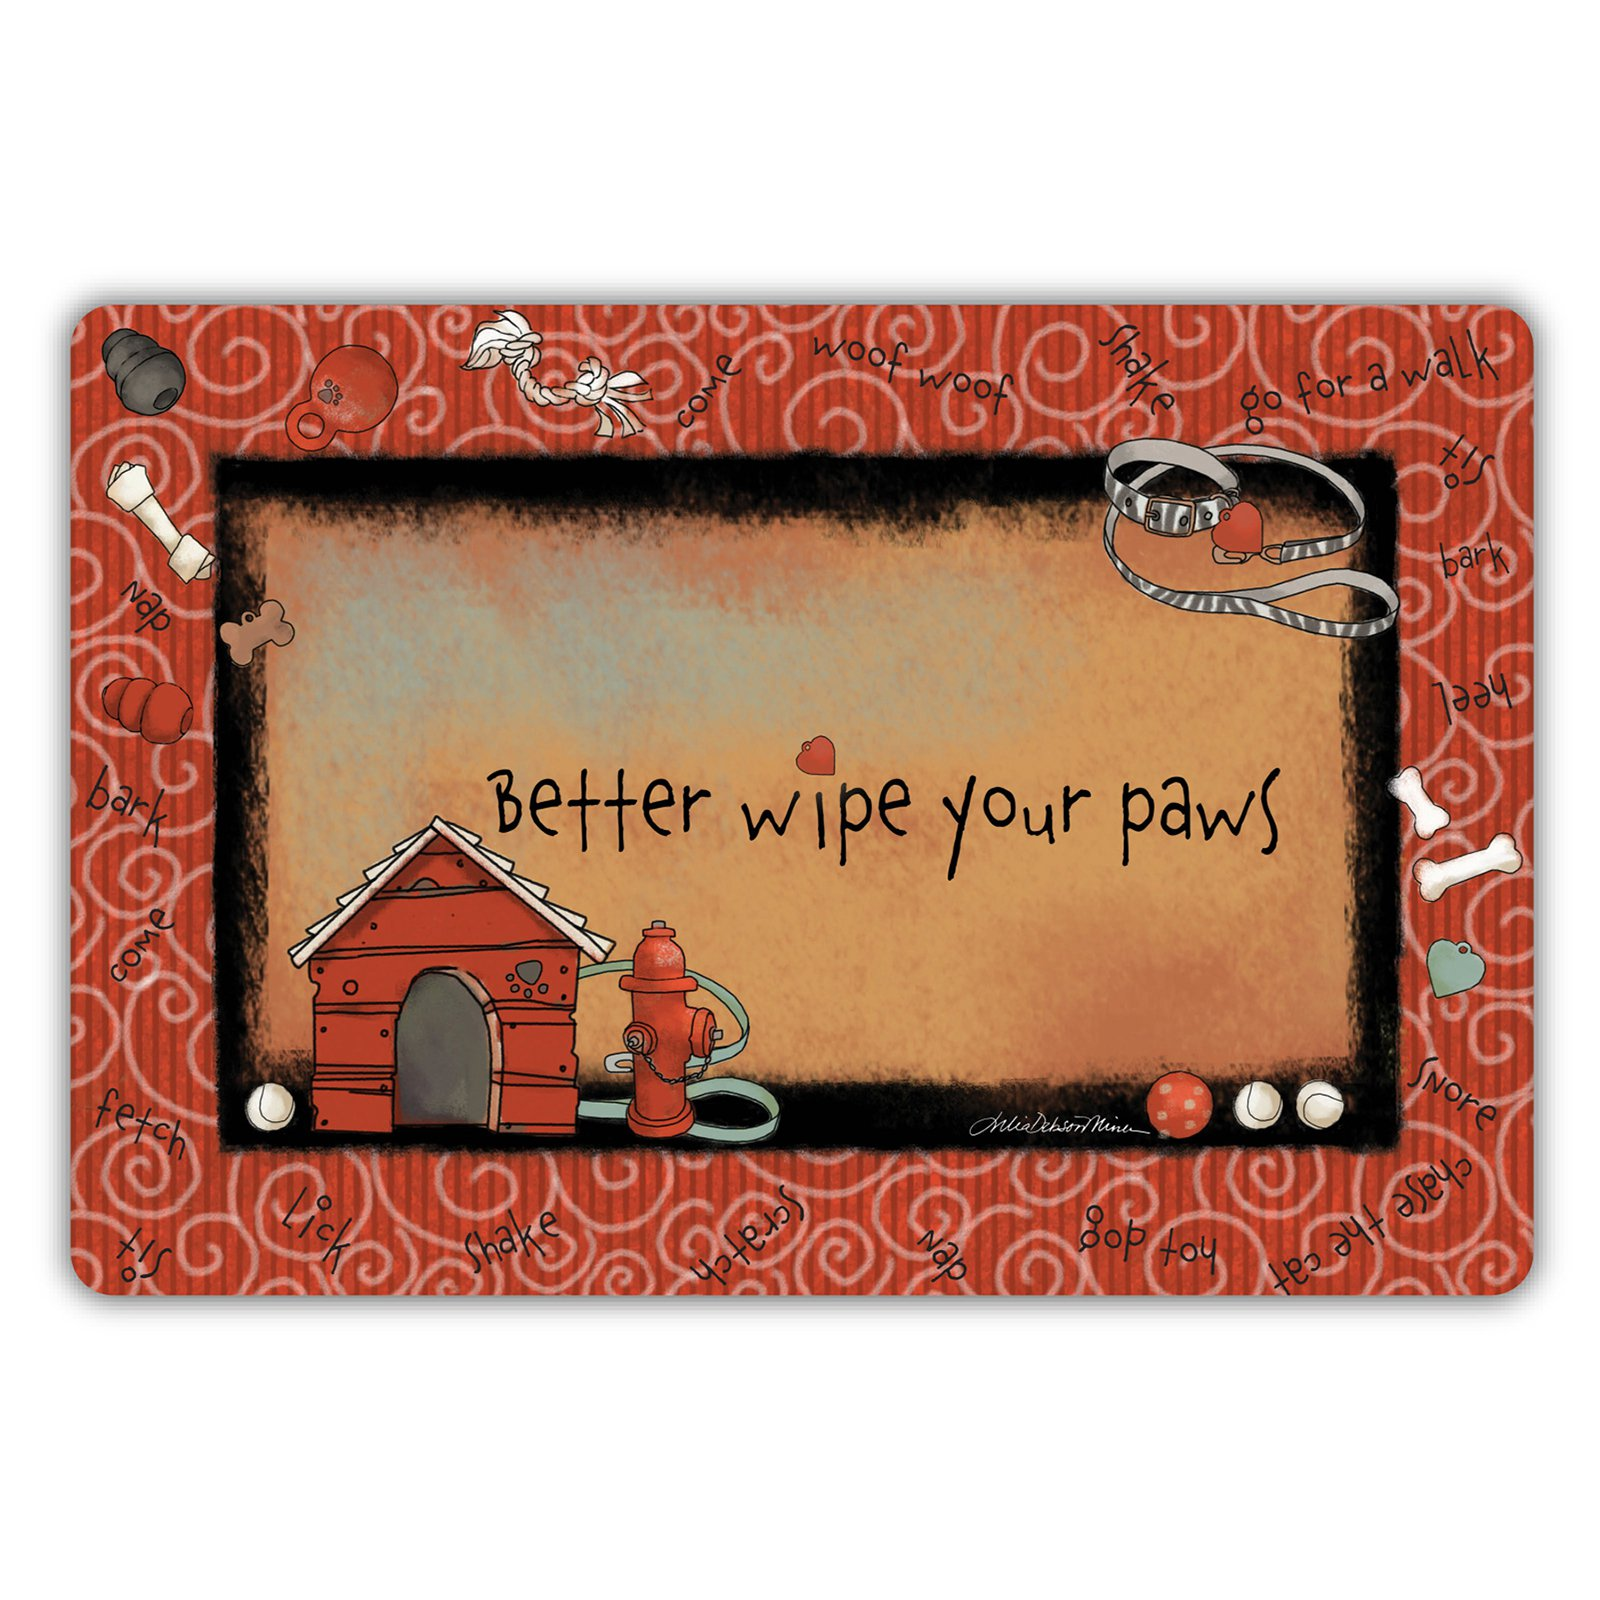 Drymate Dog Collection Welcome Mat - Swirl Border- Red